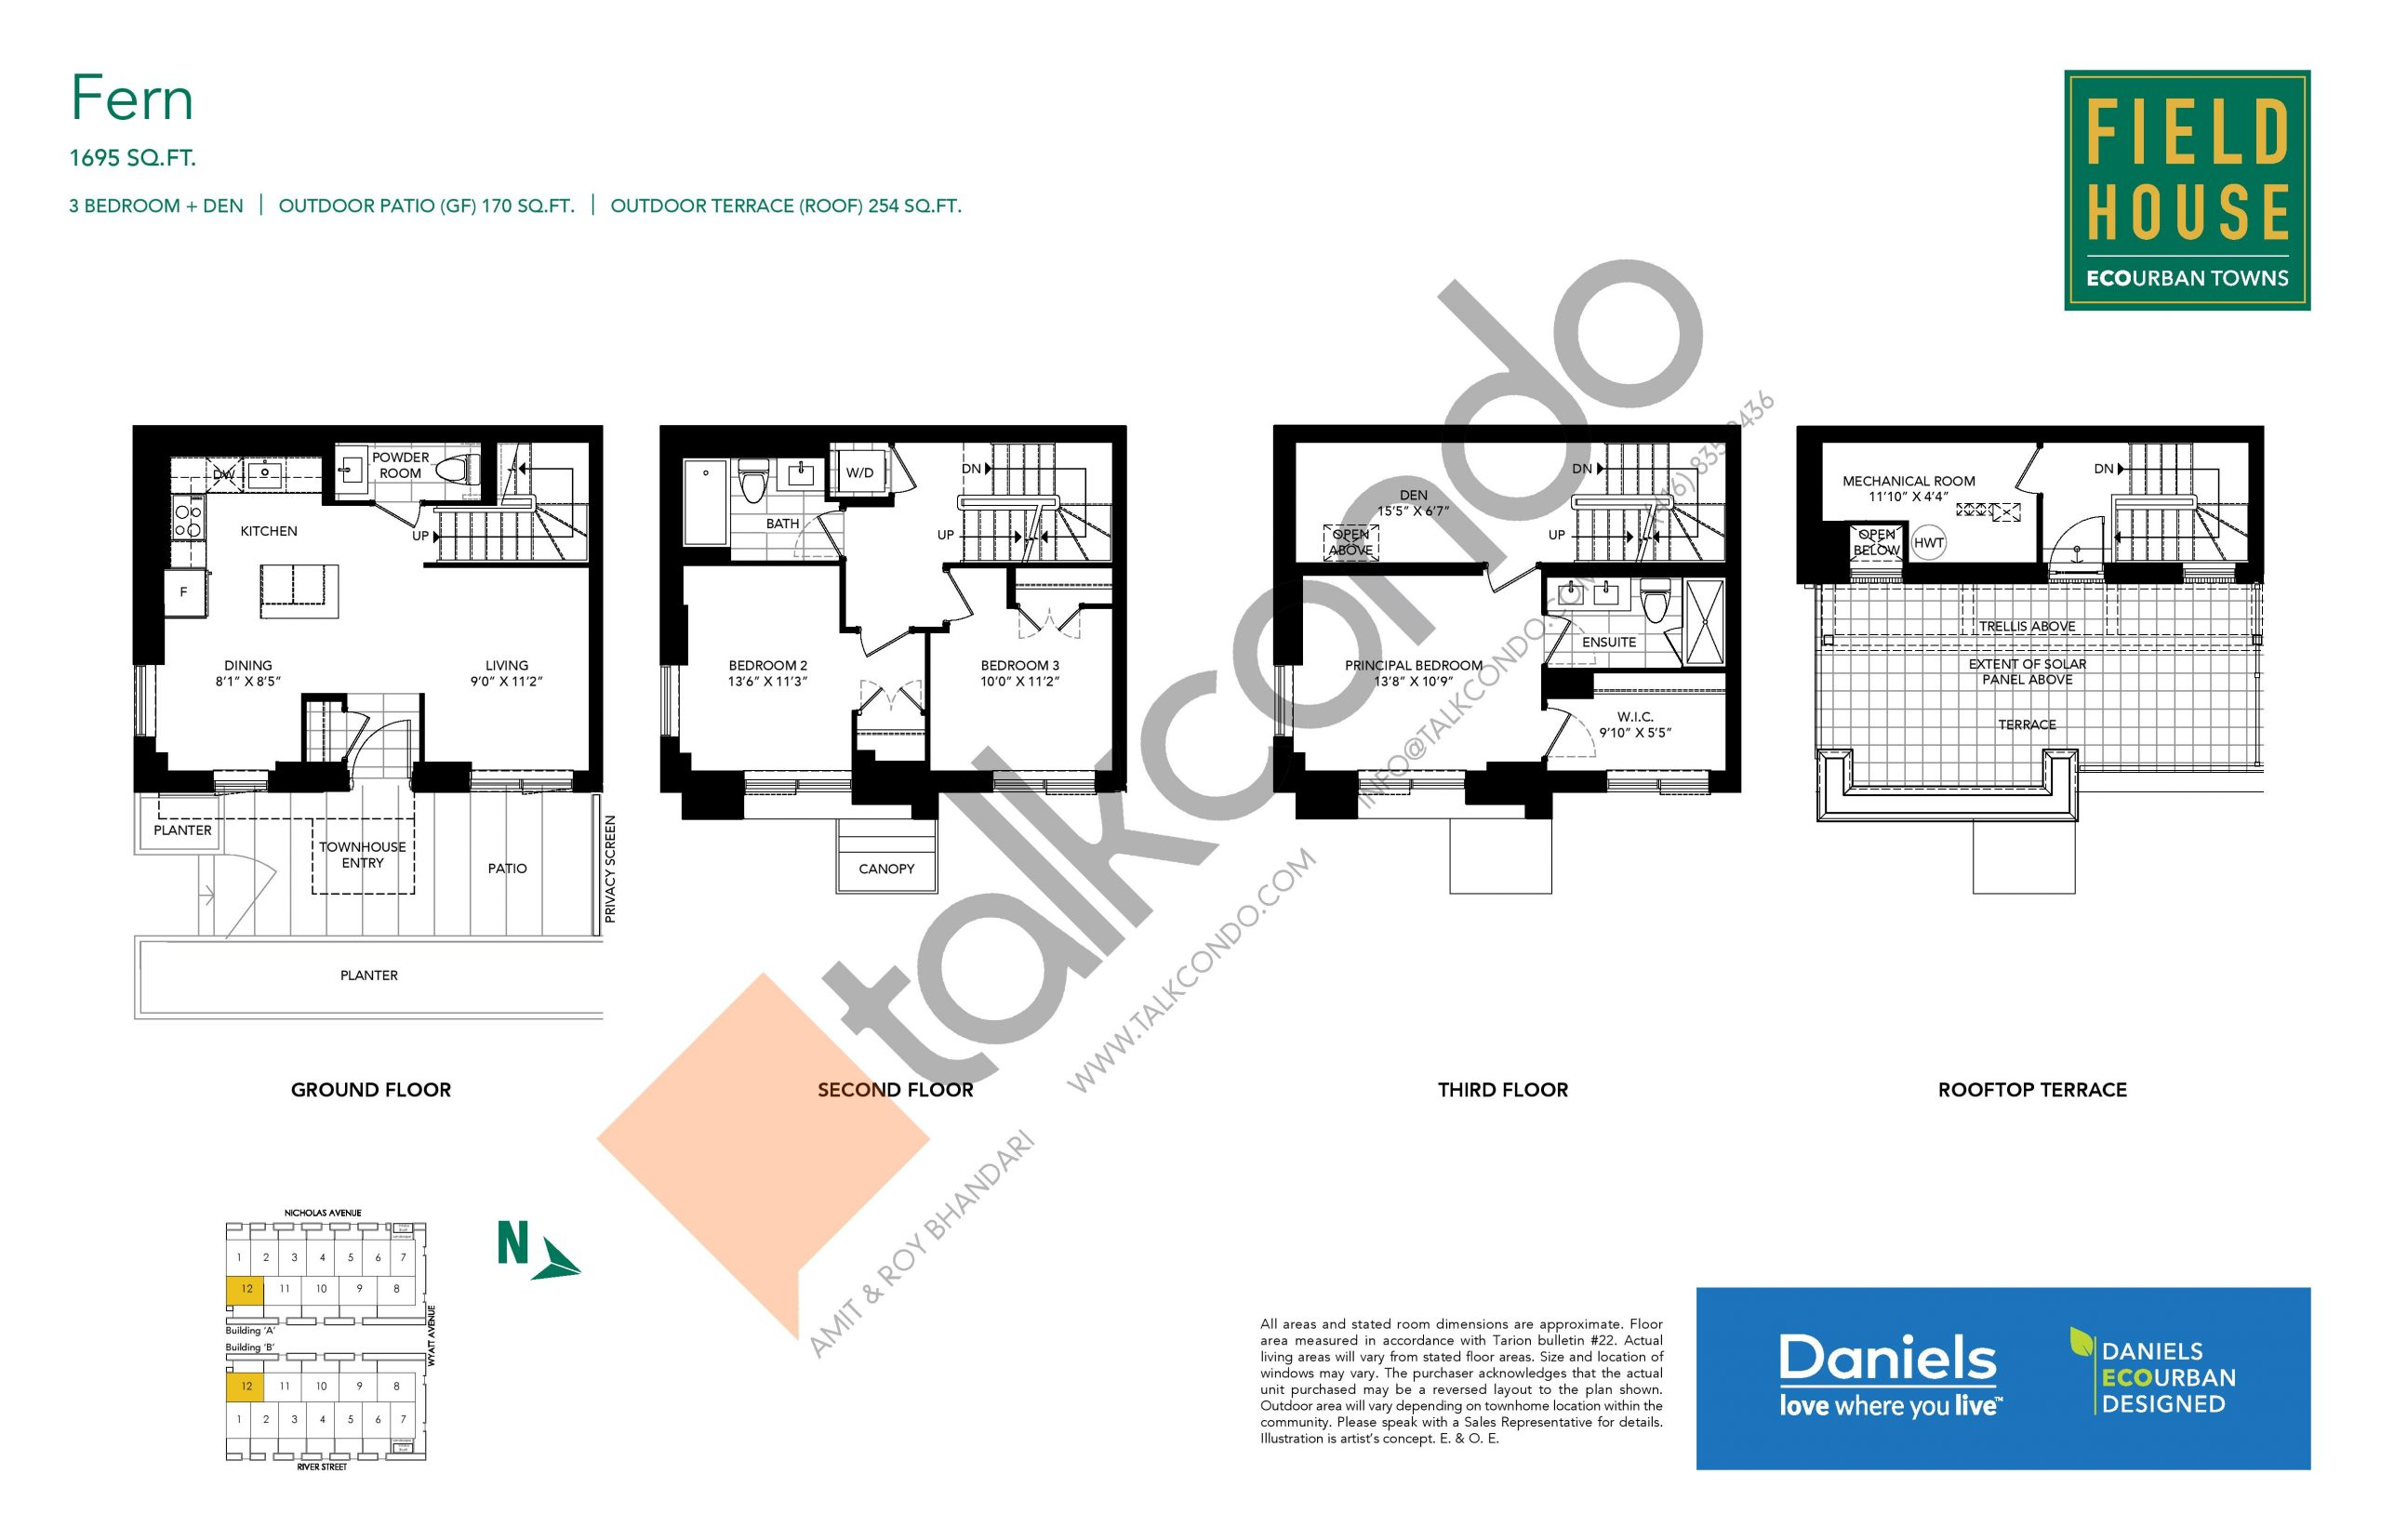 Fern Floor Plan at Field House Towns - 1695 sq.ft